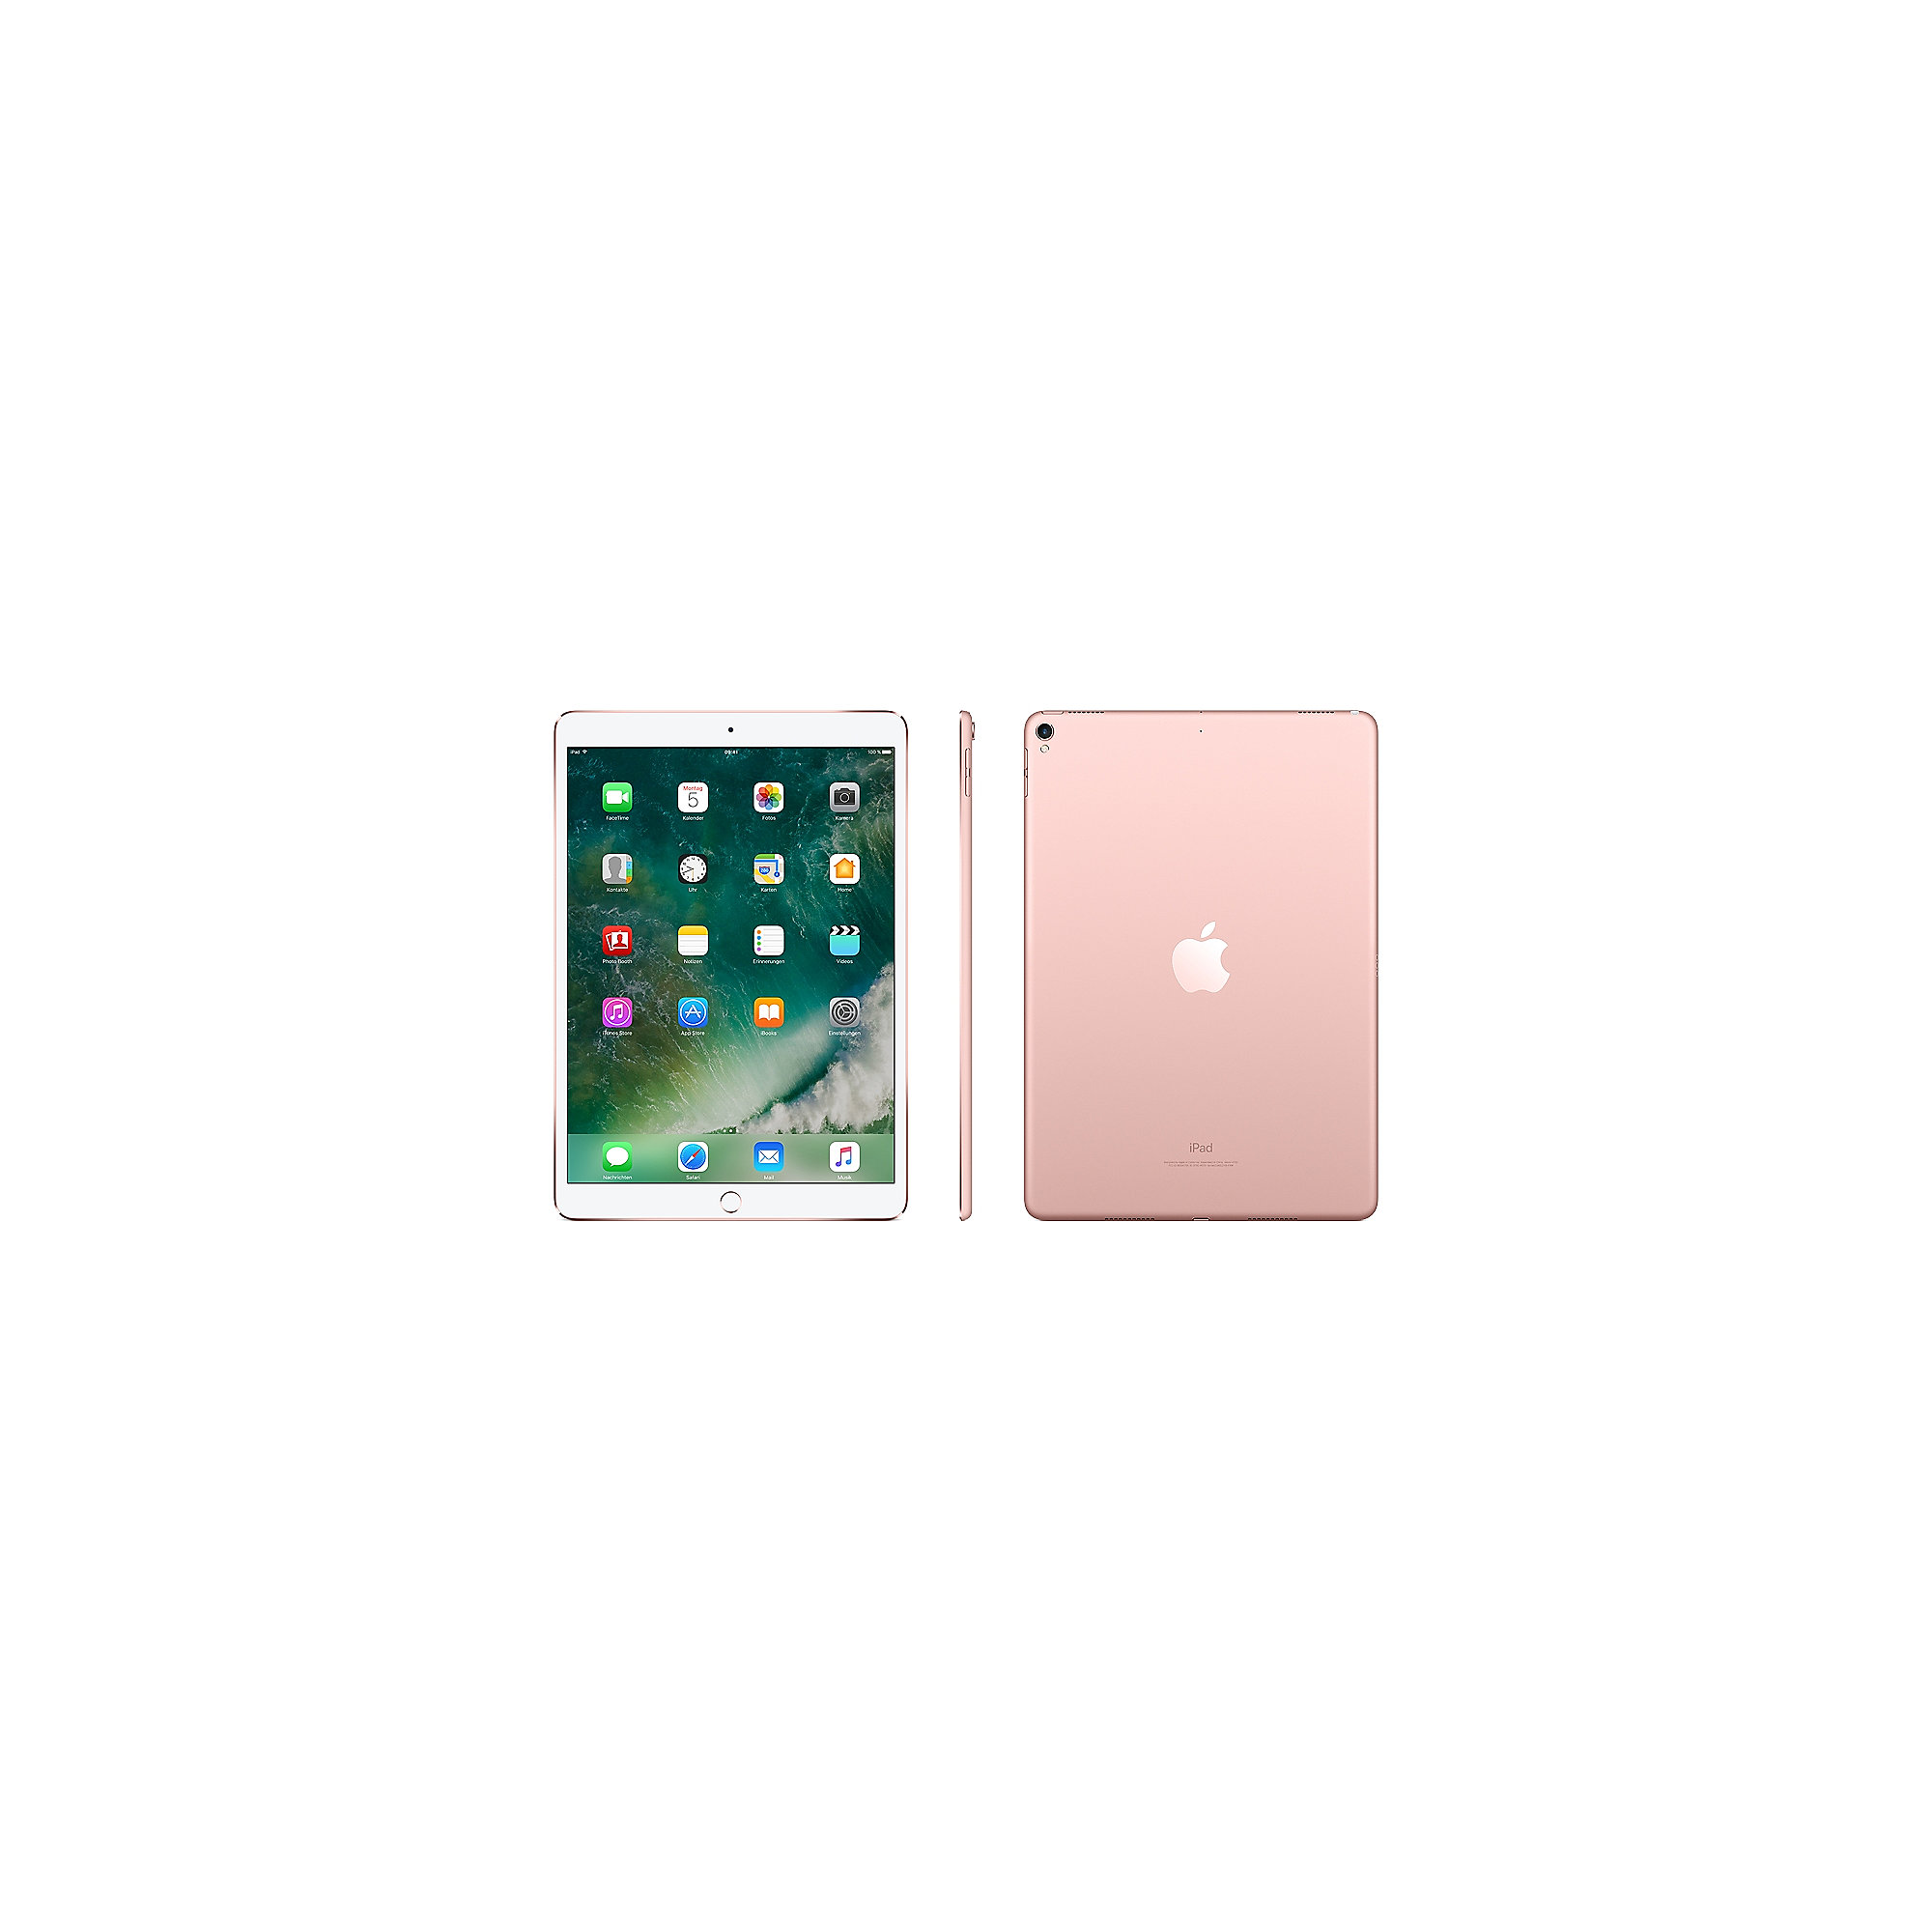 "Apple iPad Pro 10,5"" 2017 Wi-Fi 64 GB Roségold MQDY2FD/A"